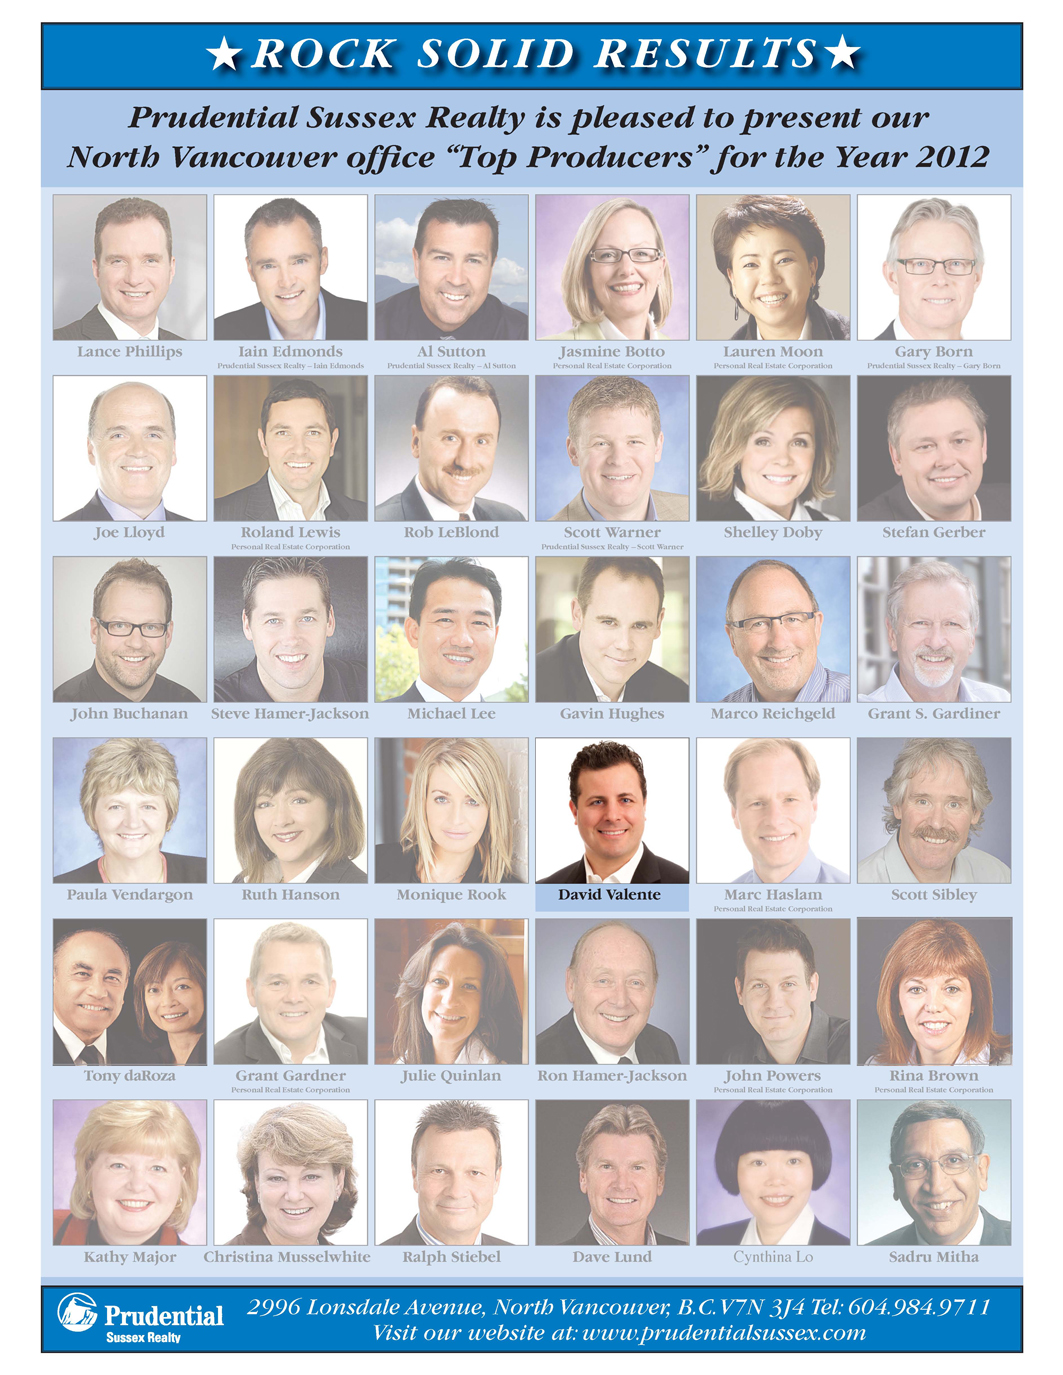 2012 Prudential Sussex Top Producers.jpg